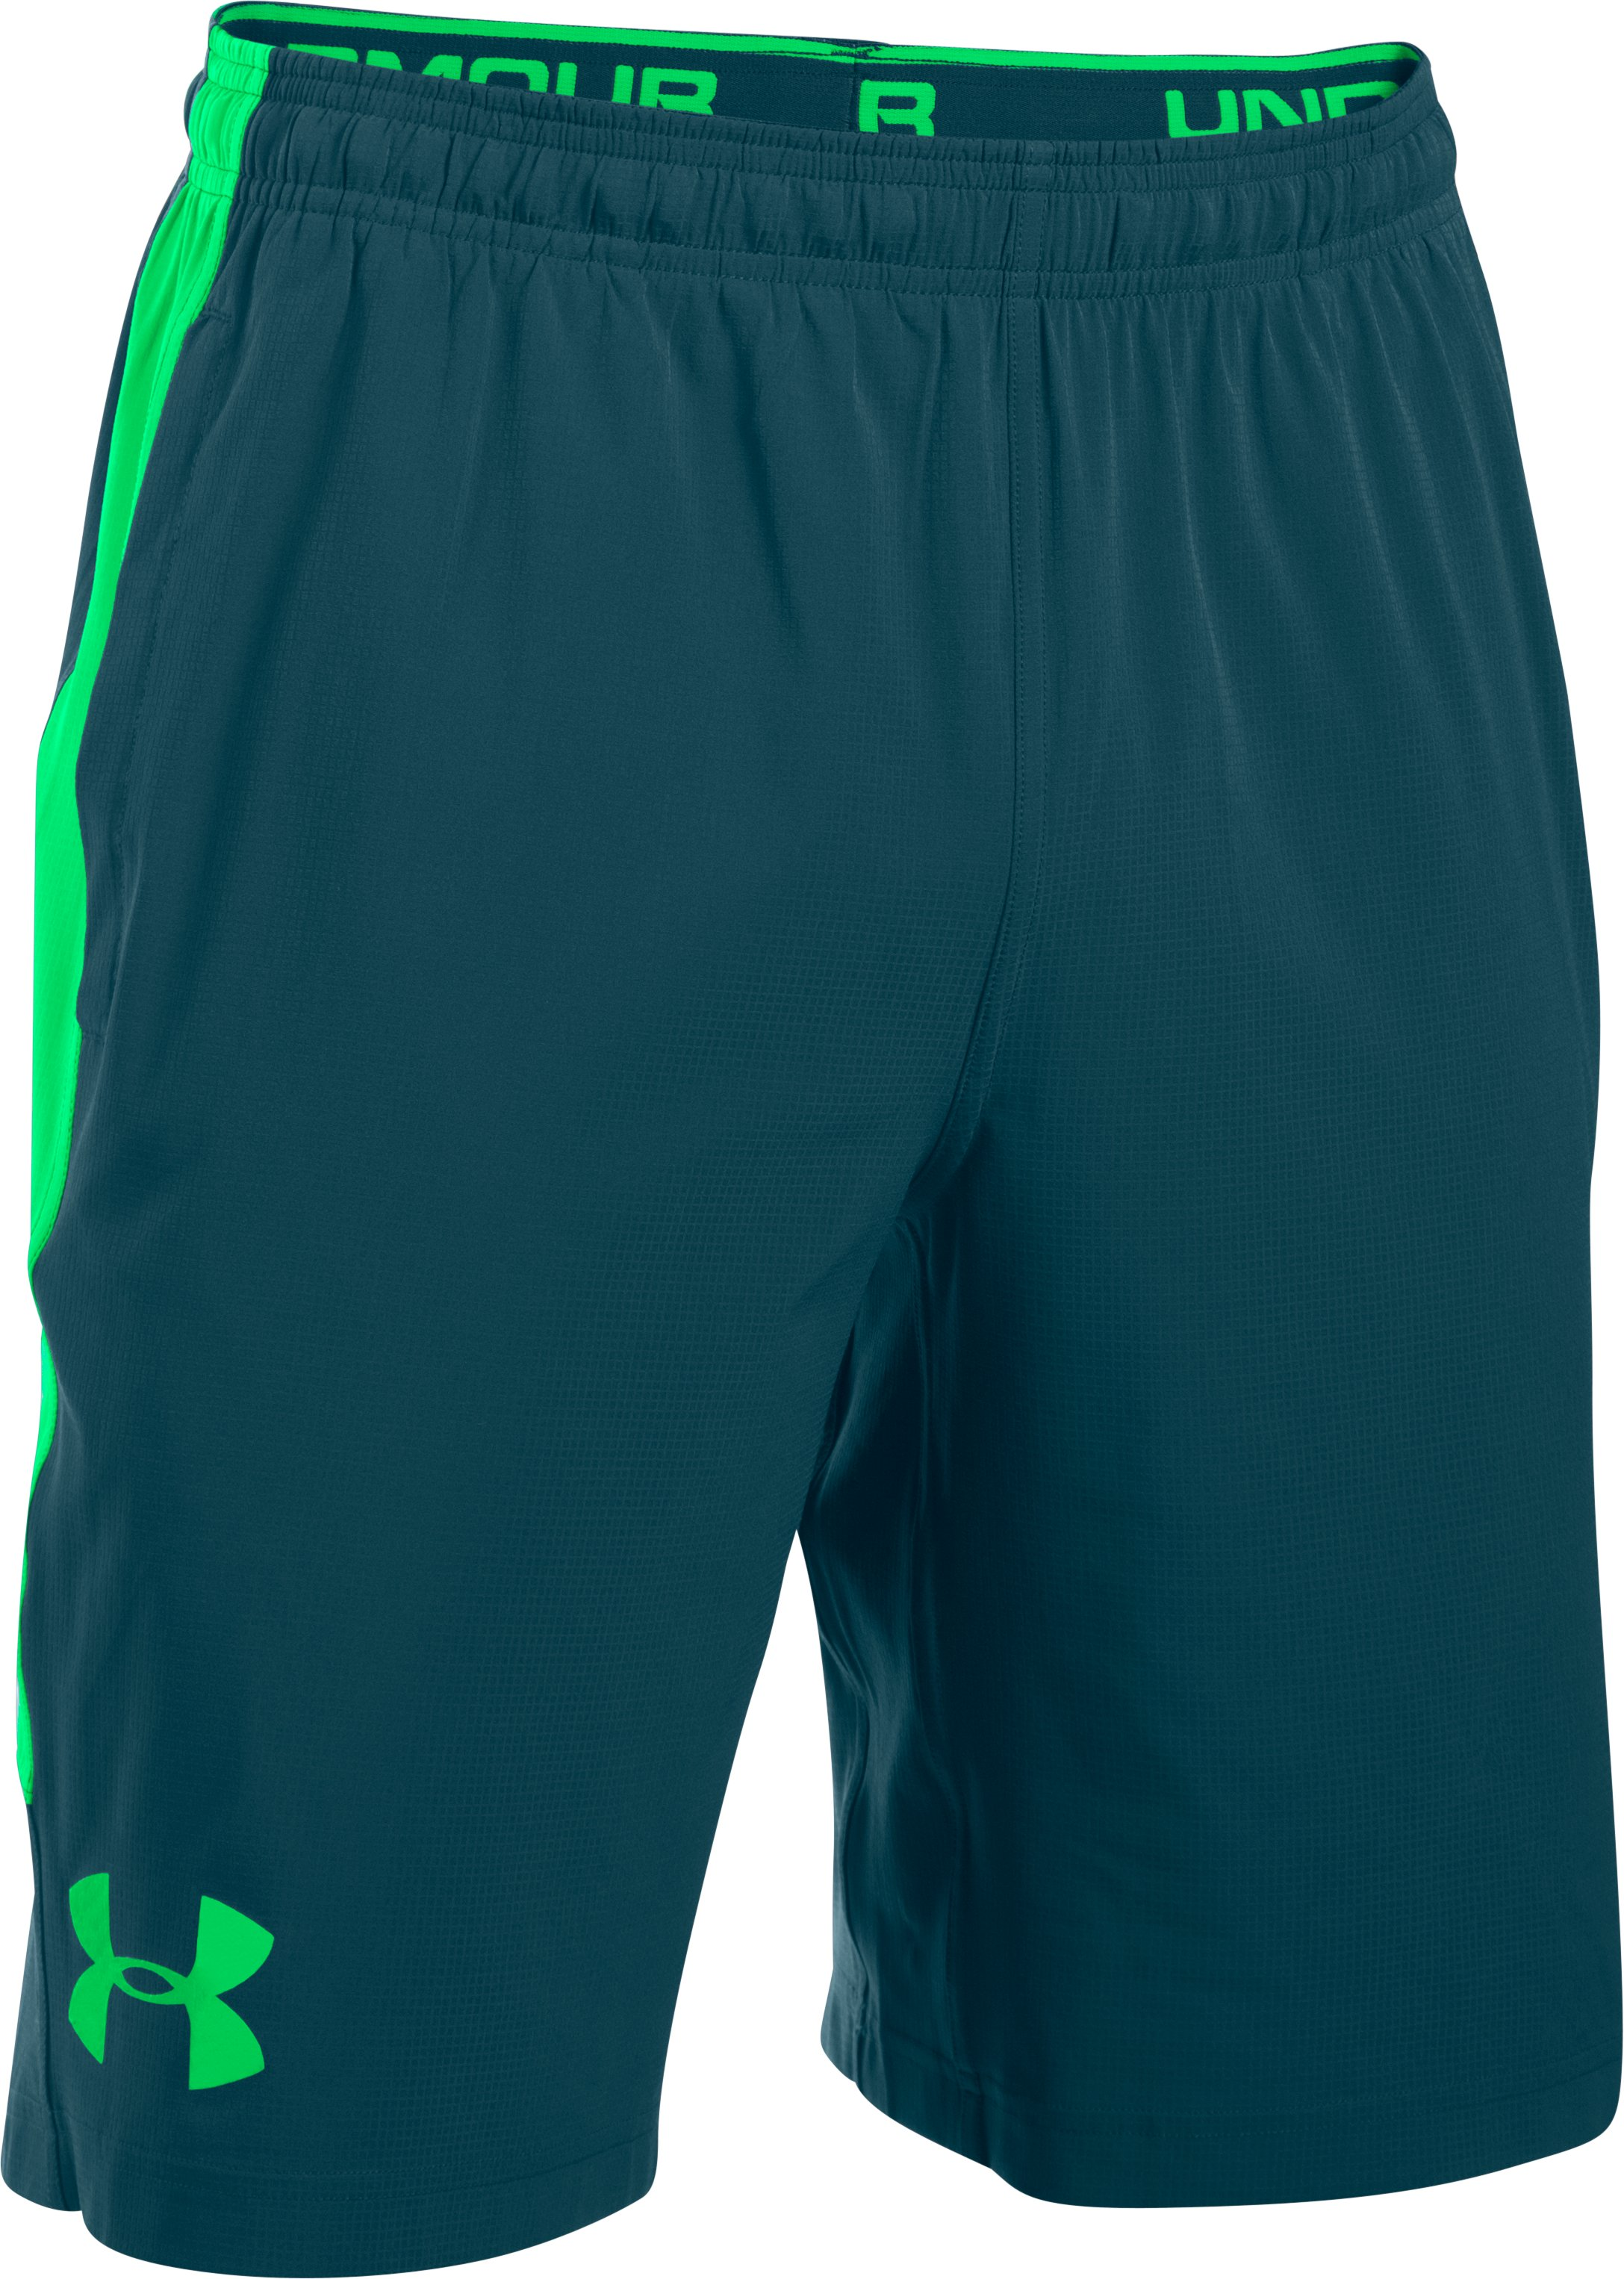 Men's UA Scope Shorts, NOVA TEAL